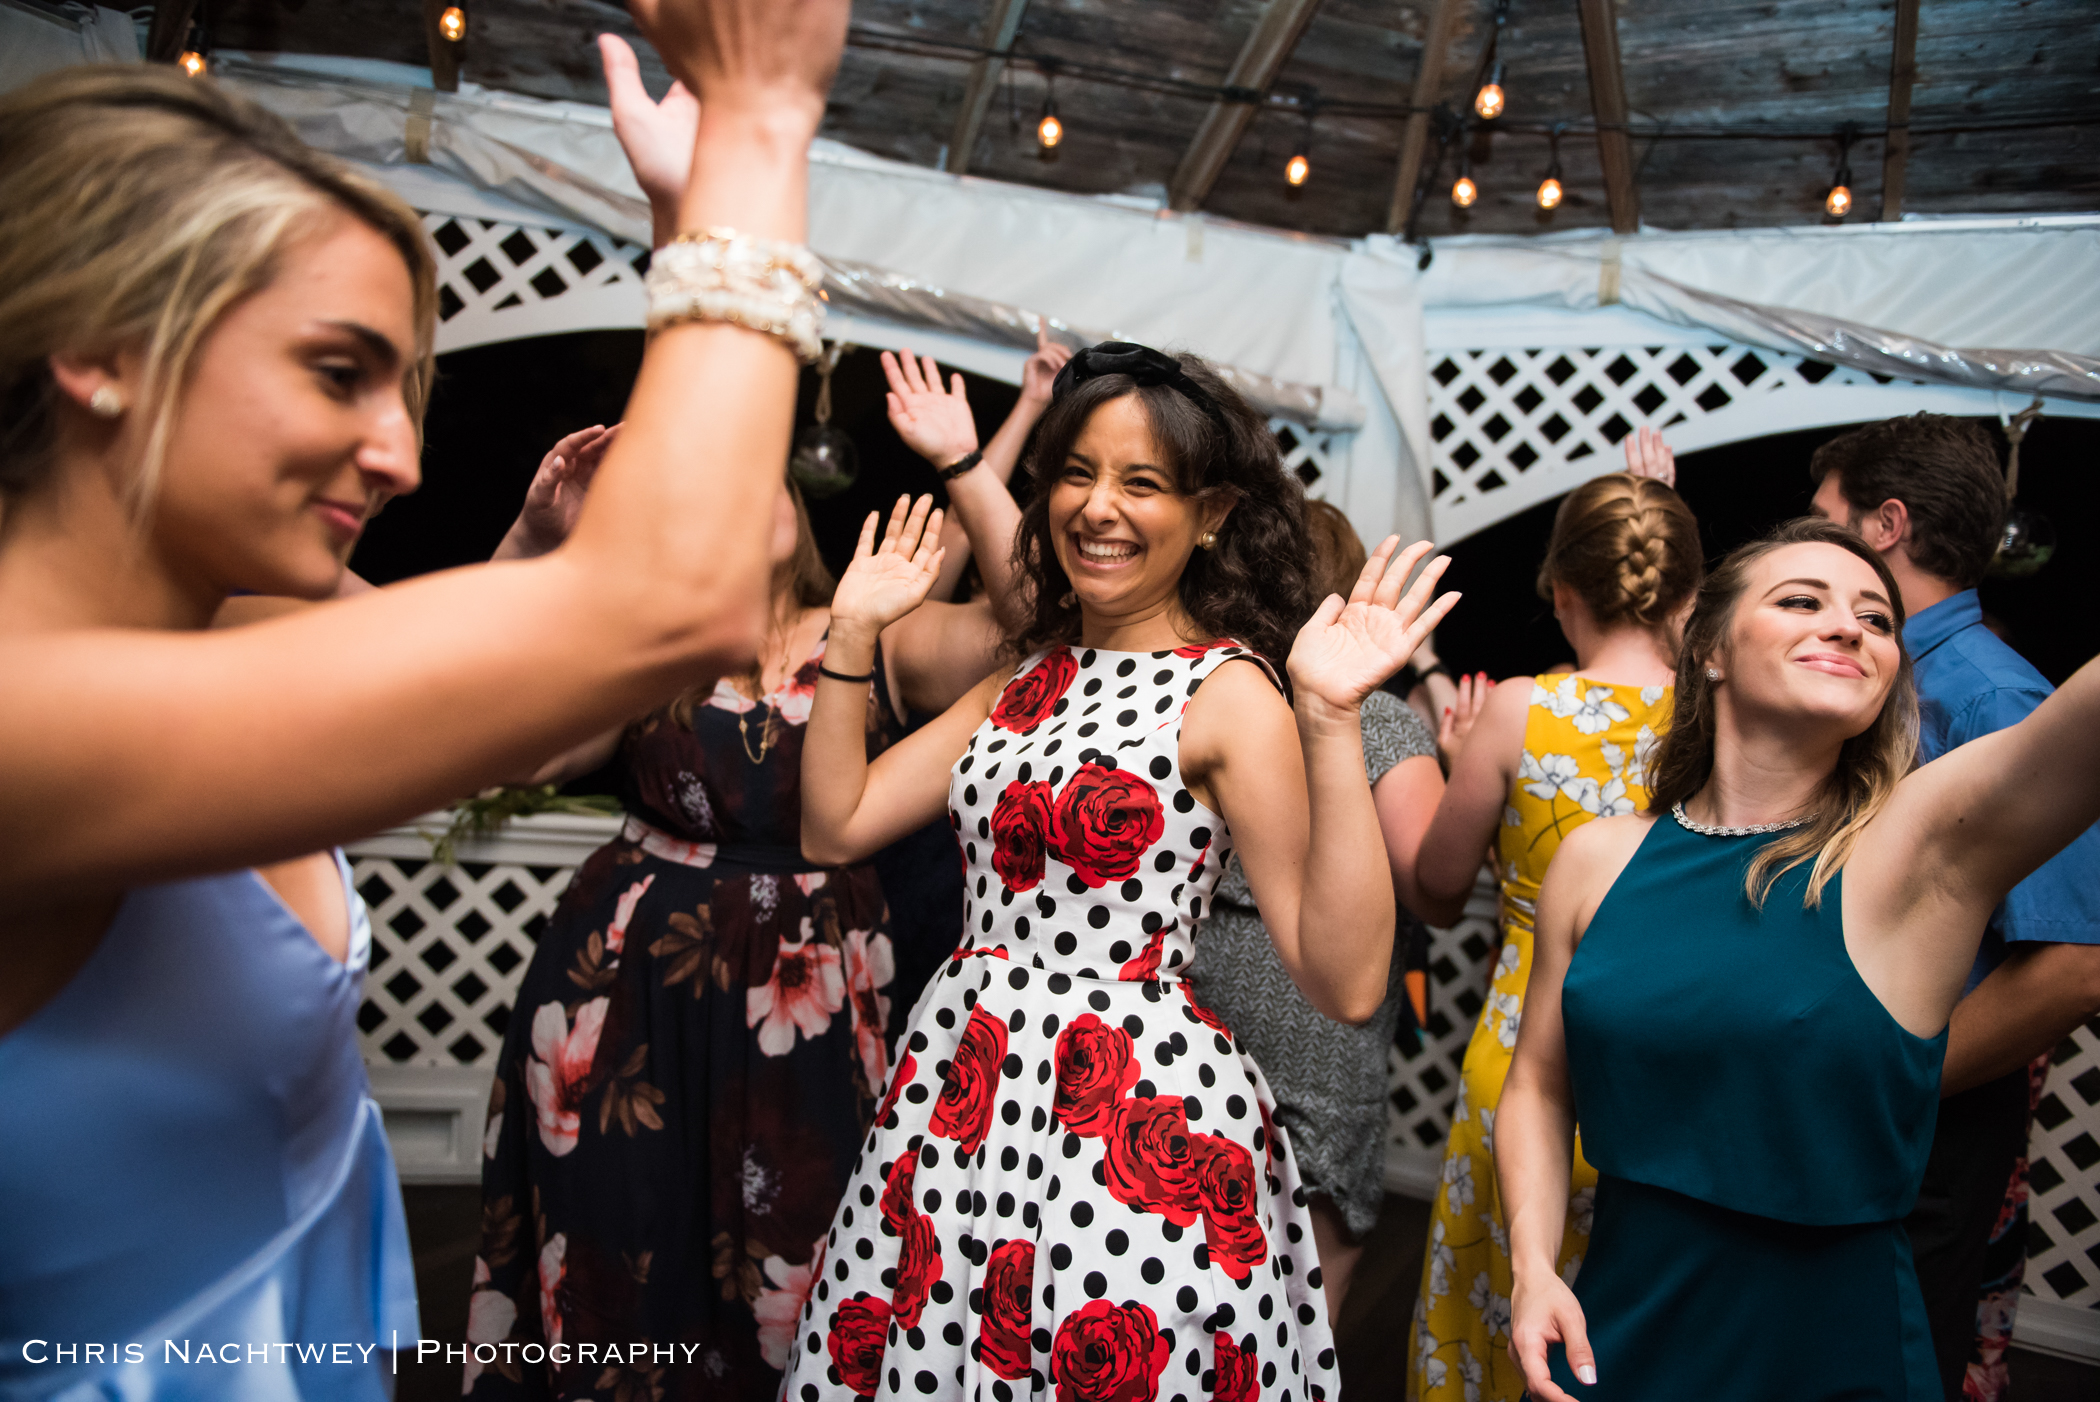 inn-at-mystic-wedding-photos-chris-nachtwey-photography-2018-30.jpg